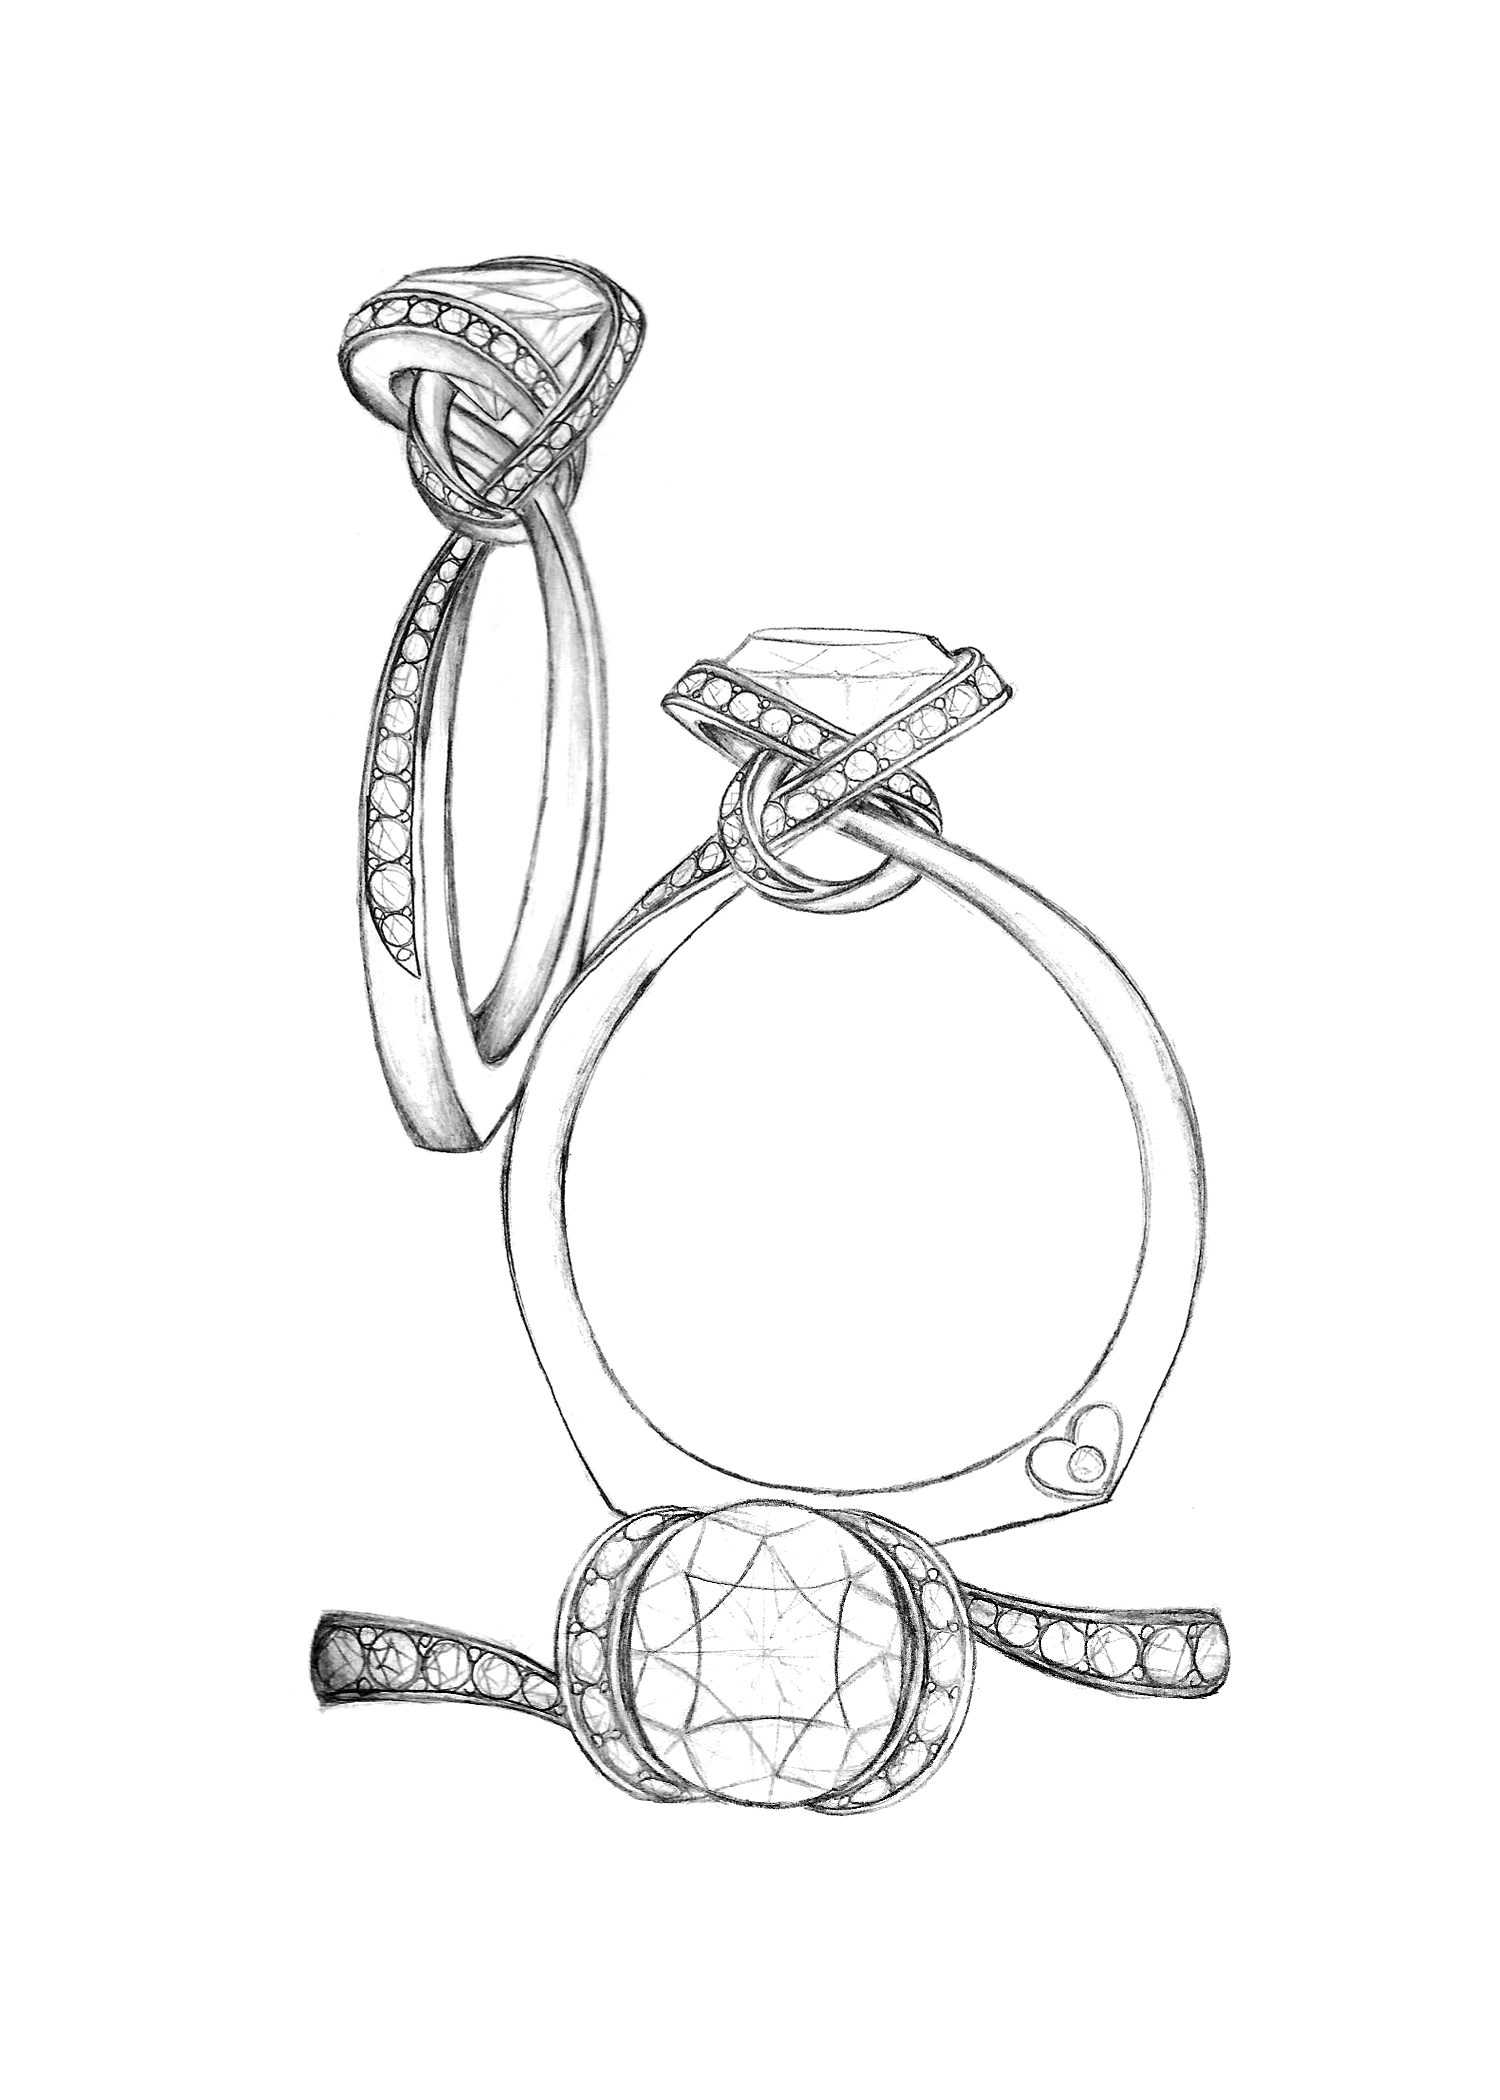 The last option for this week's new bridal design voting ...